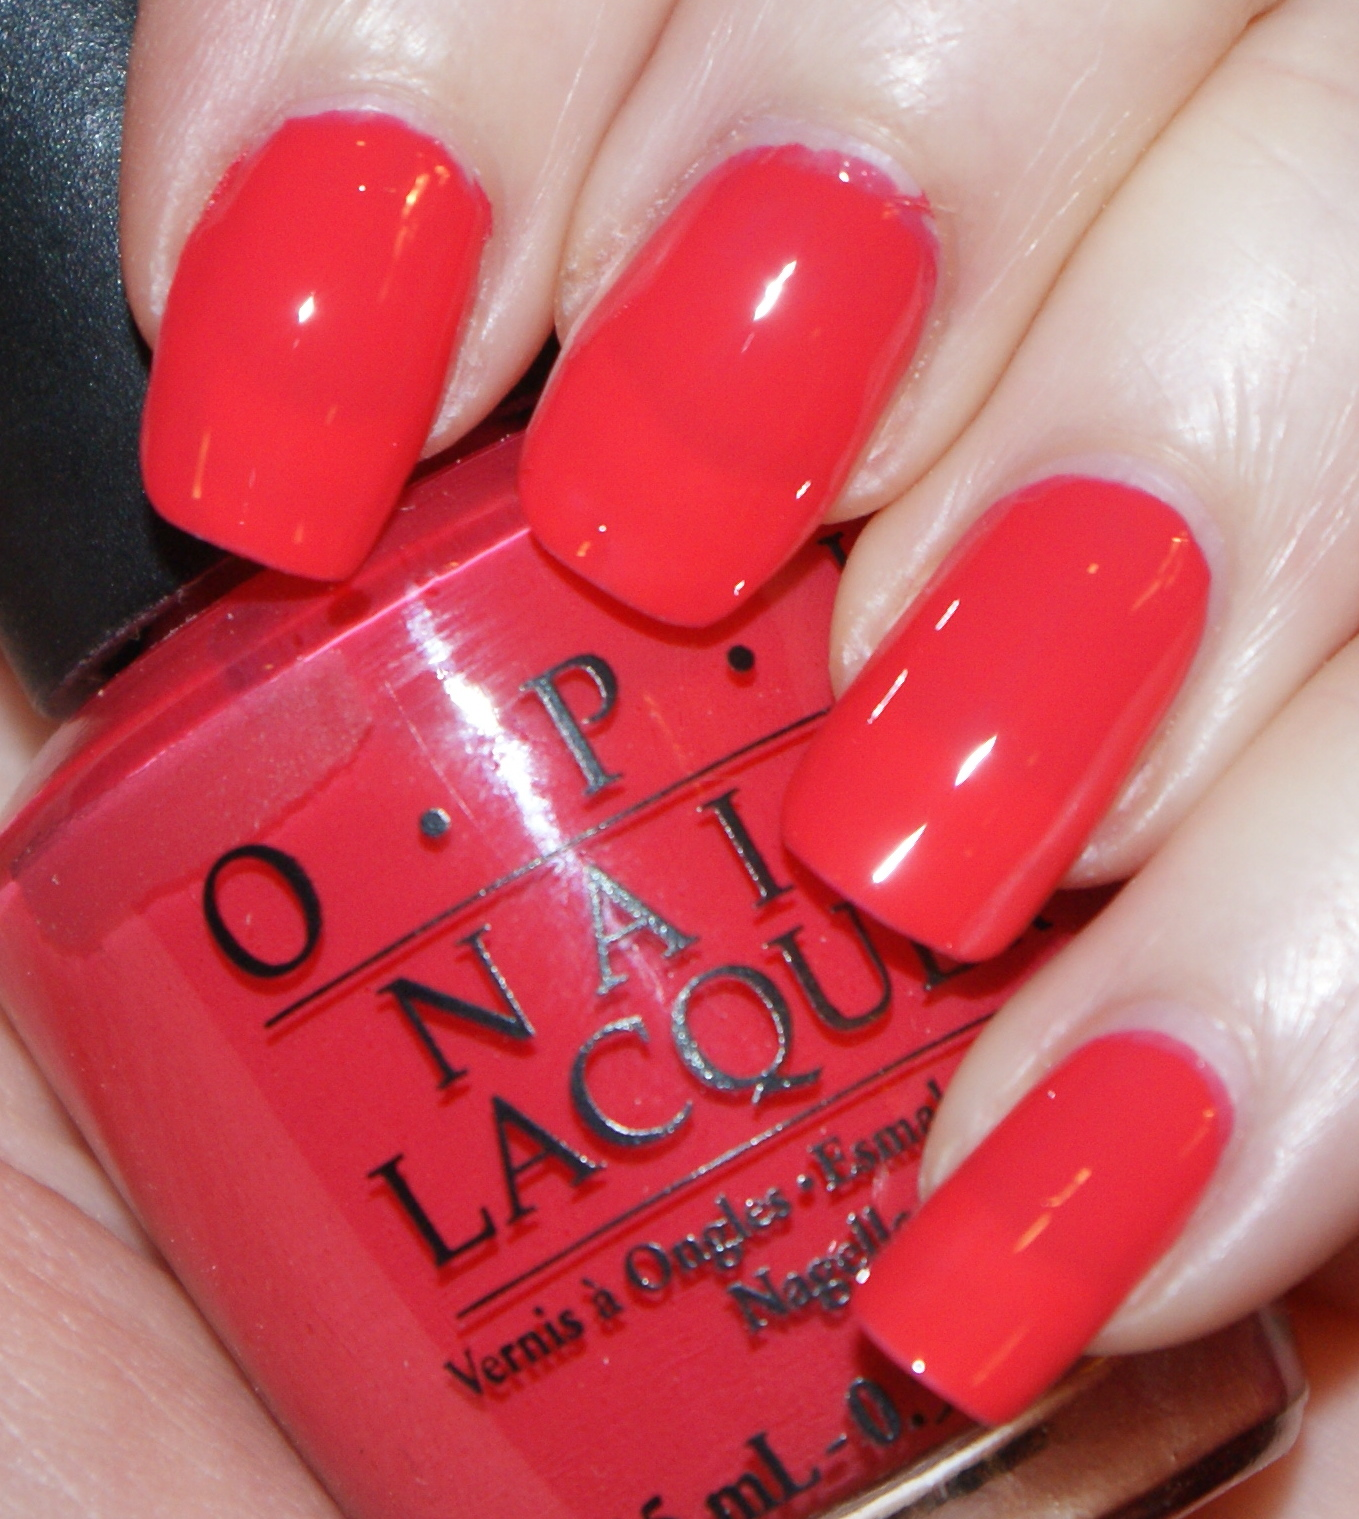 Awareness Month And Of Course Our October Oranges The Perfect Polish For Both Opi My Chihuahua Bites An Orangish Pink With A Fabulous Bite To It